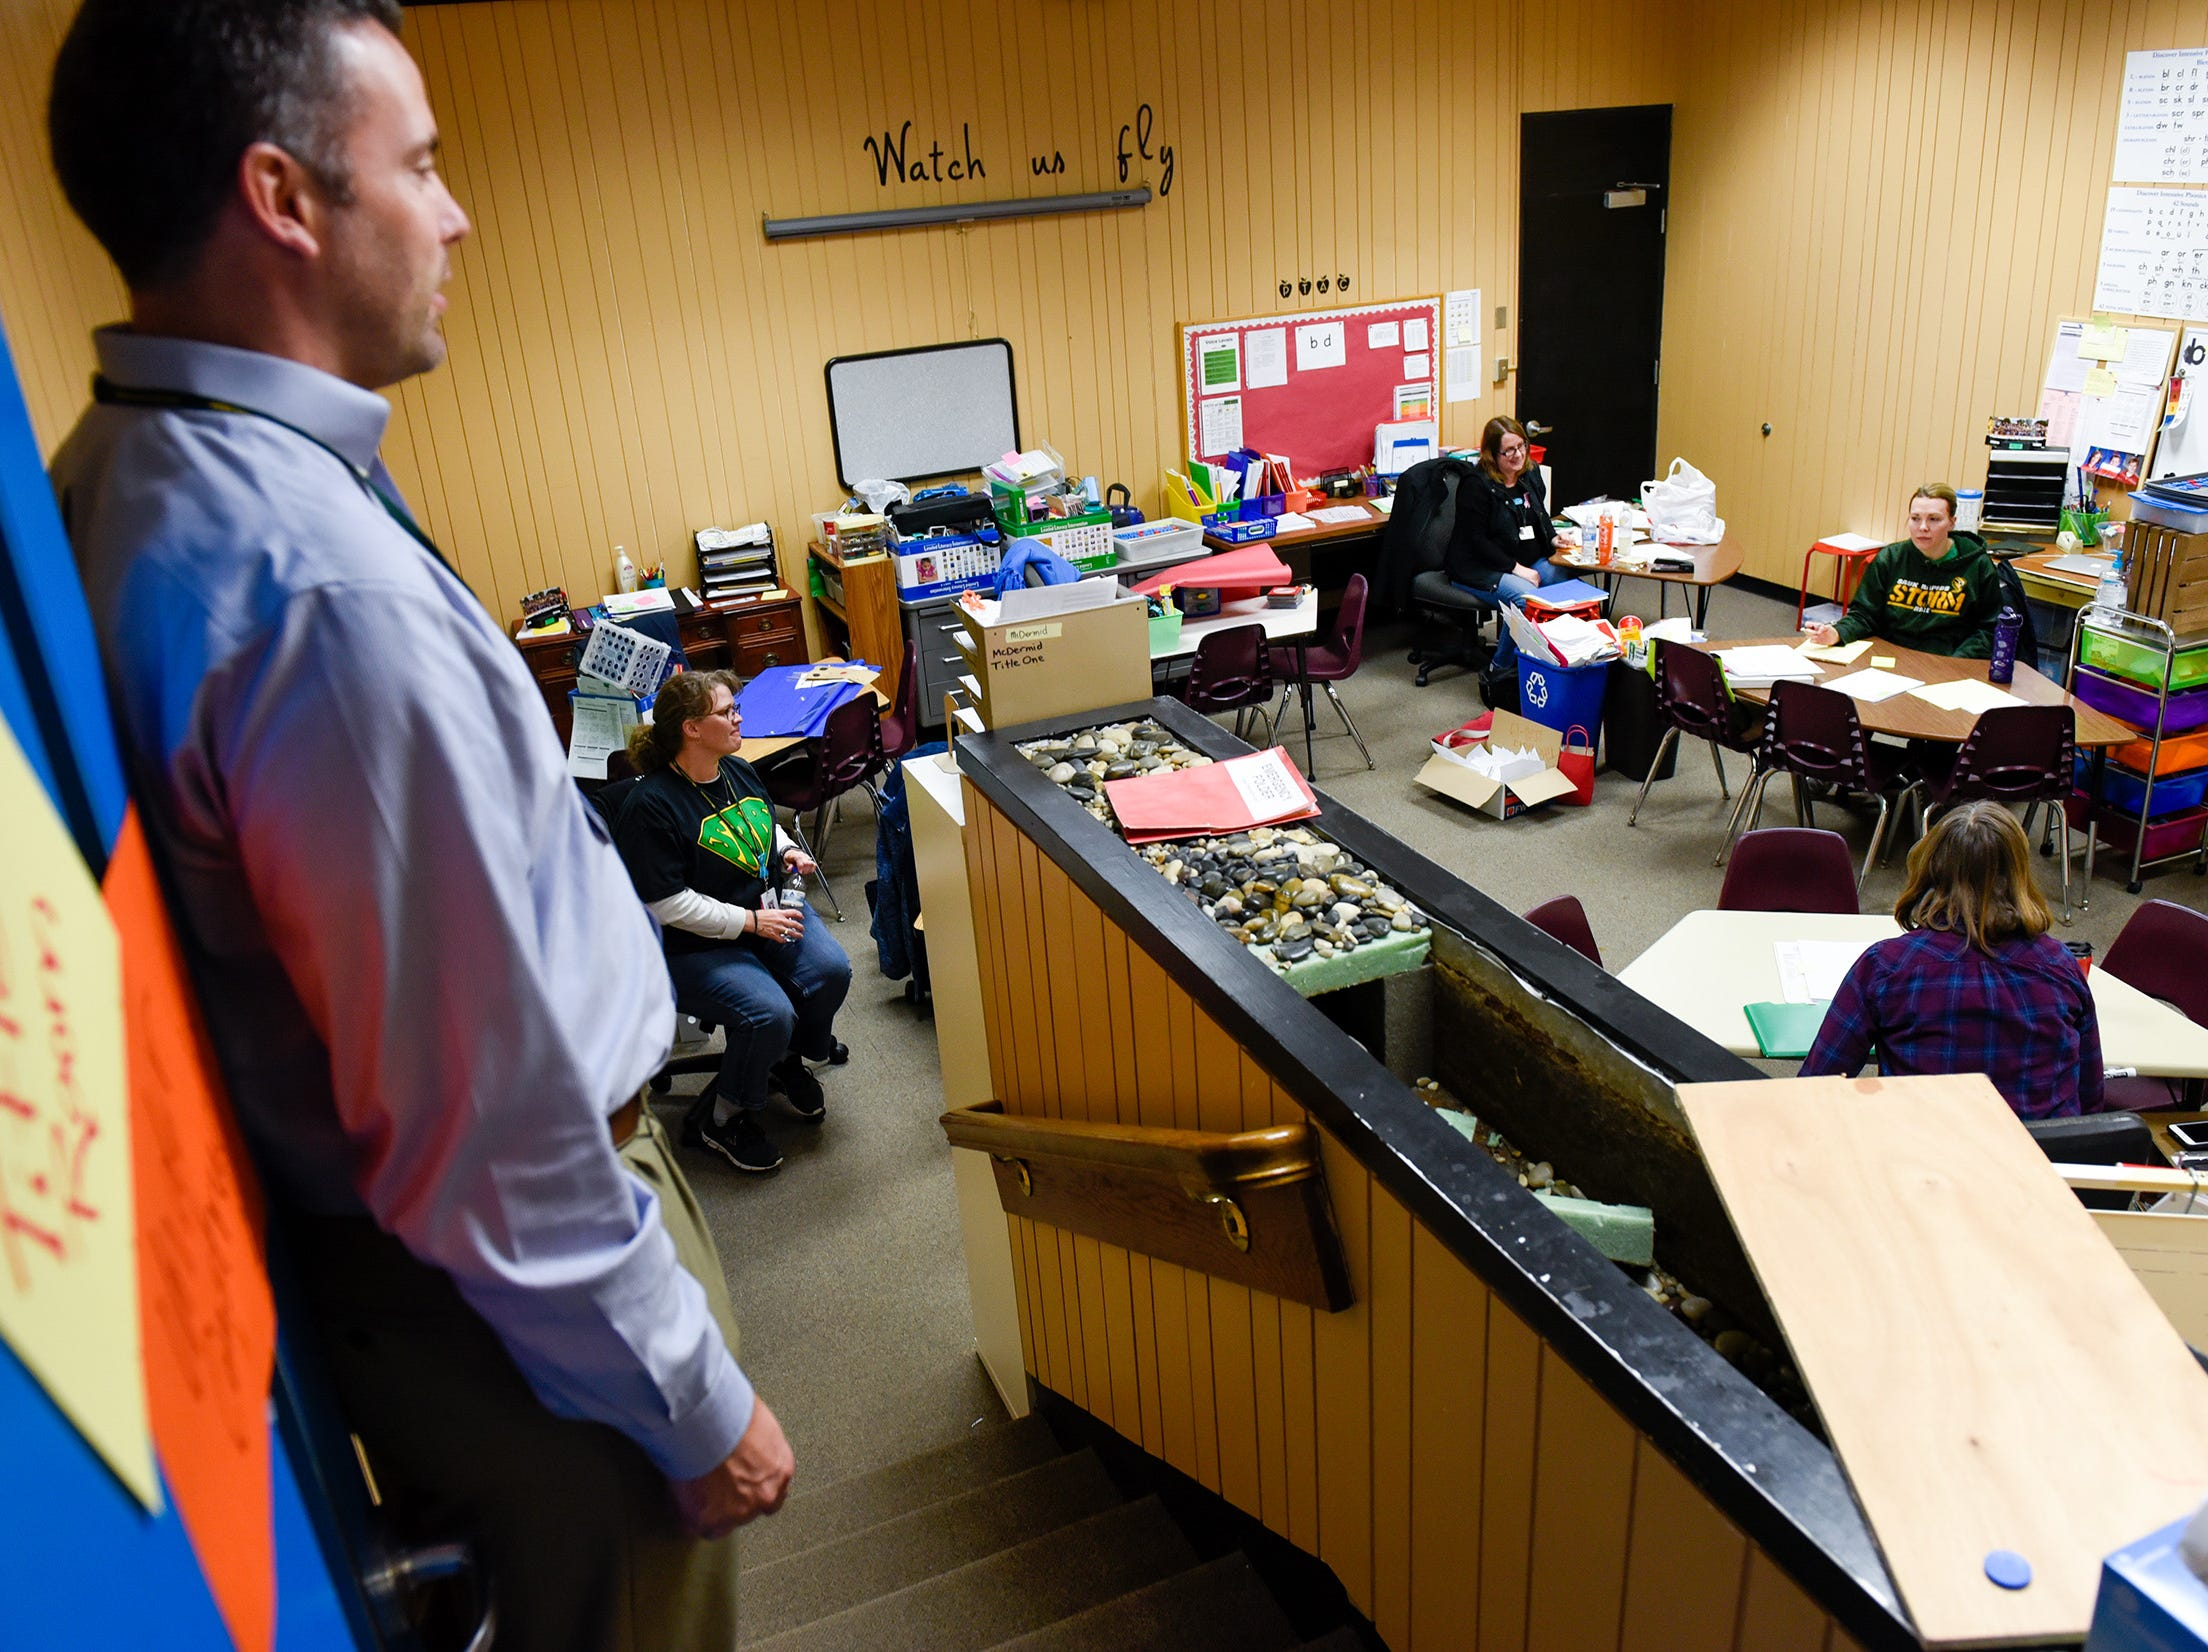 Sauk Rapids-Rice Superintendent Aaron Sinclair check on Title 1 teachers who combined their classrooms into the teachers lounge Tuesday, Jan. 15, at Pleasantview Elementary School in Sauk Rapids.